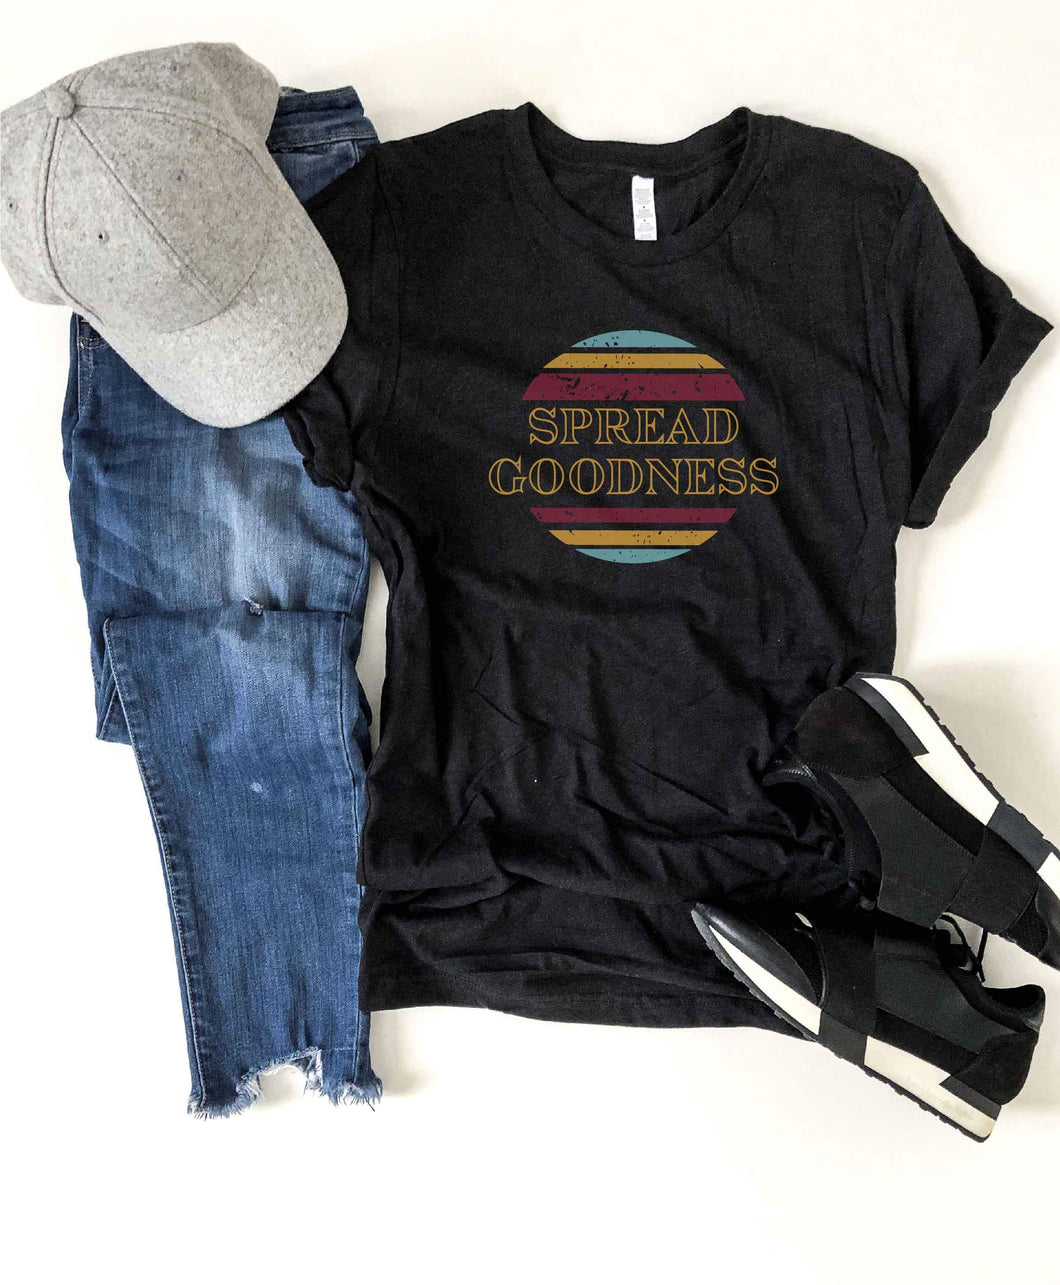 Spread goodness tee Short sleeve graphic tee Bella Canvas 3001 black